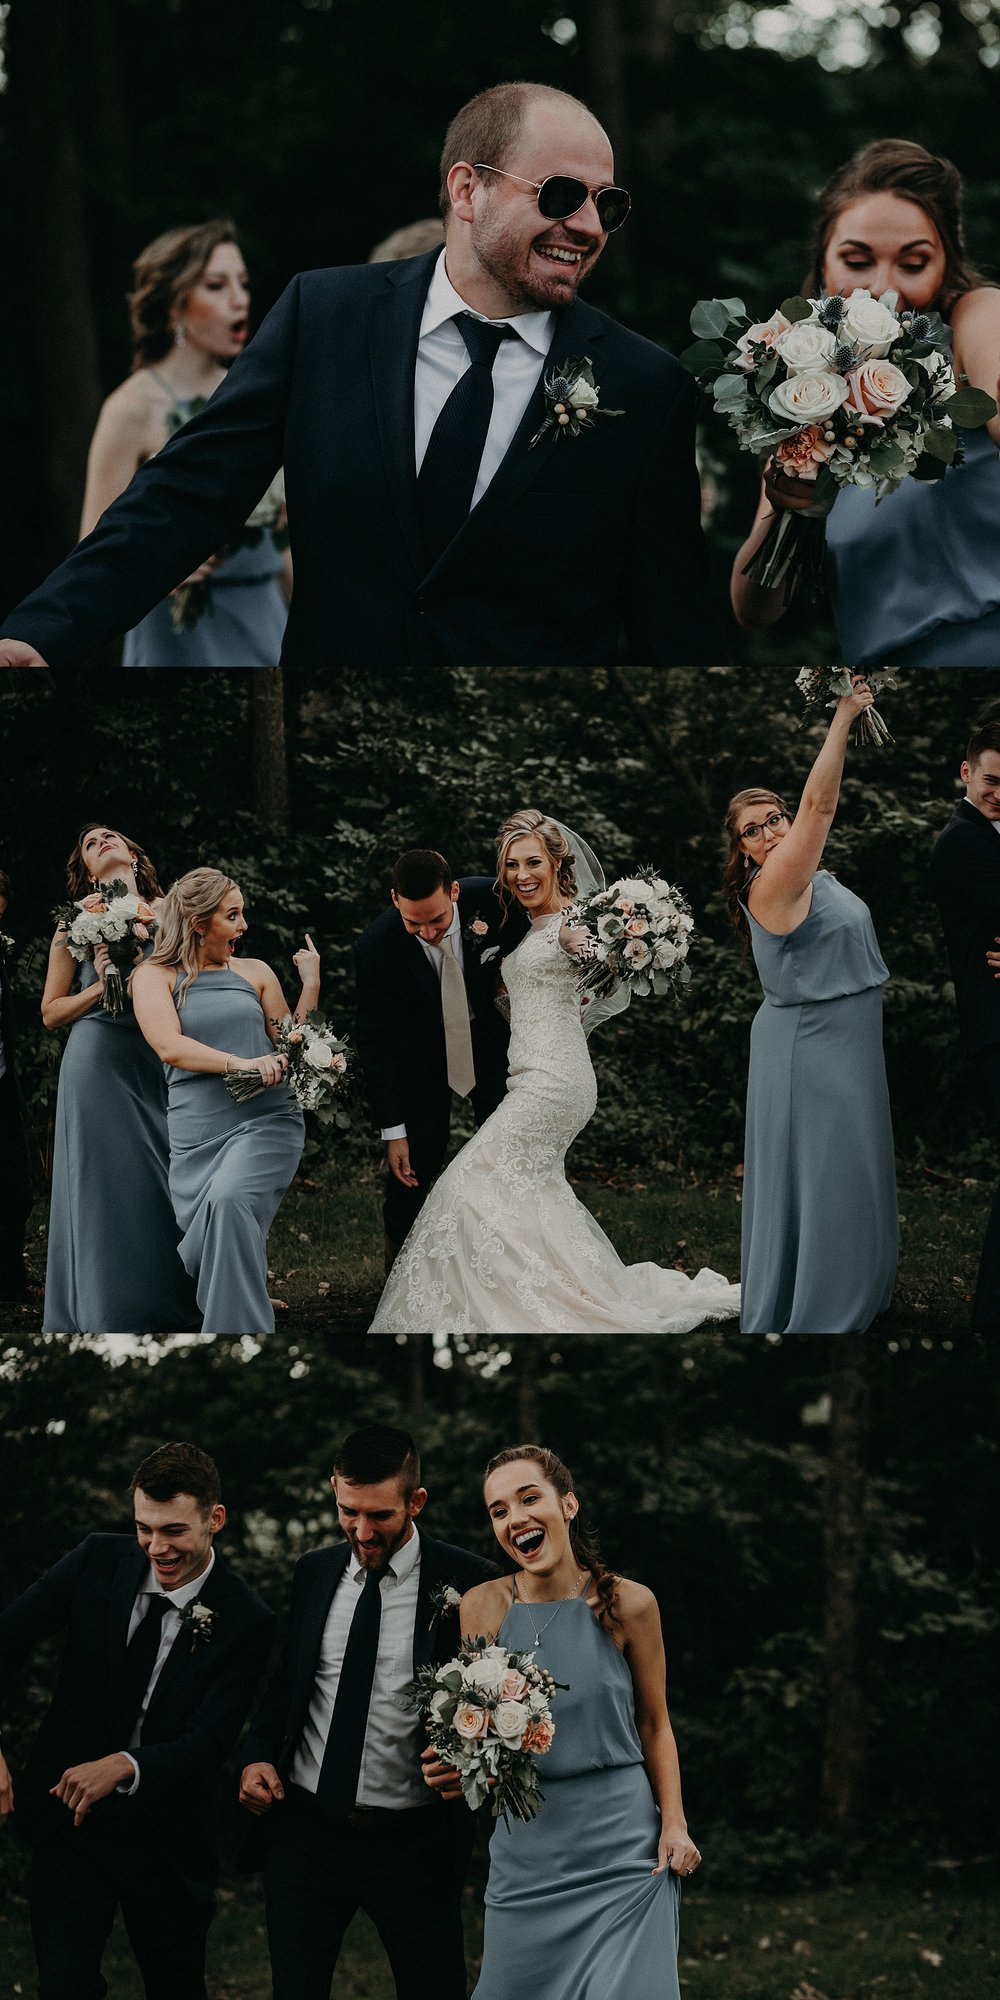 Dancing and energetic wedding party during photo on wedding day in Lancaster, PA